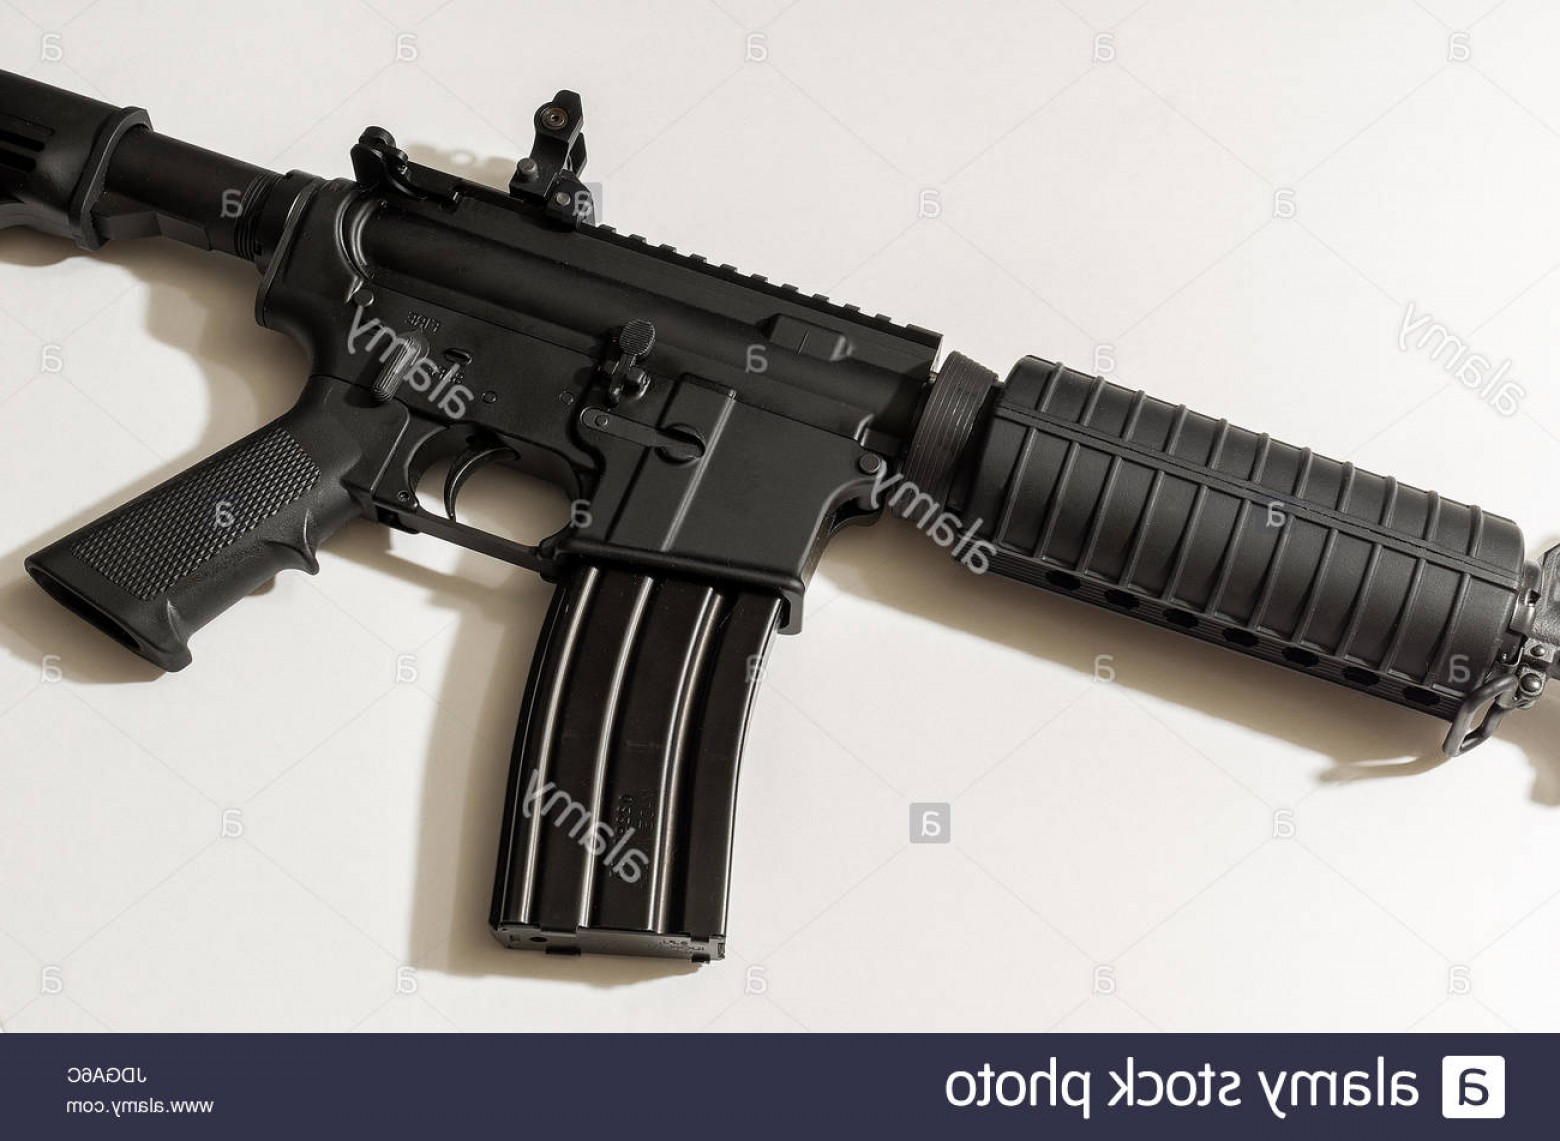 Nato Assault Rifles Vector Graphics: Stock Photo Ar Rifle Chambered In Nato Lying On A Wooden Table